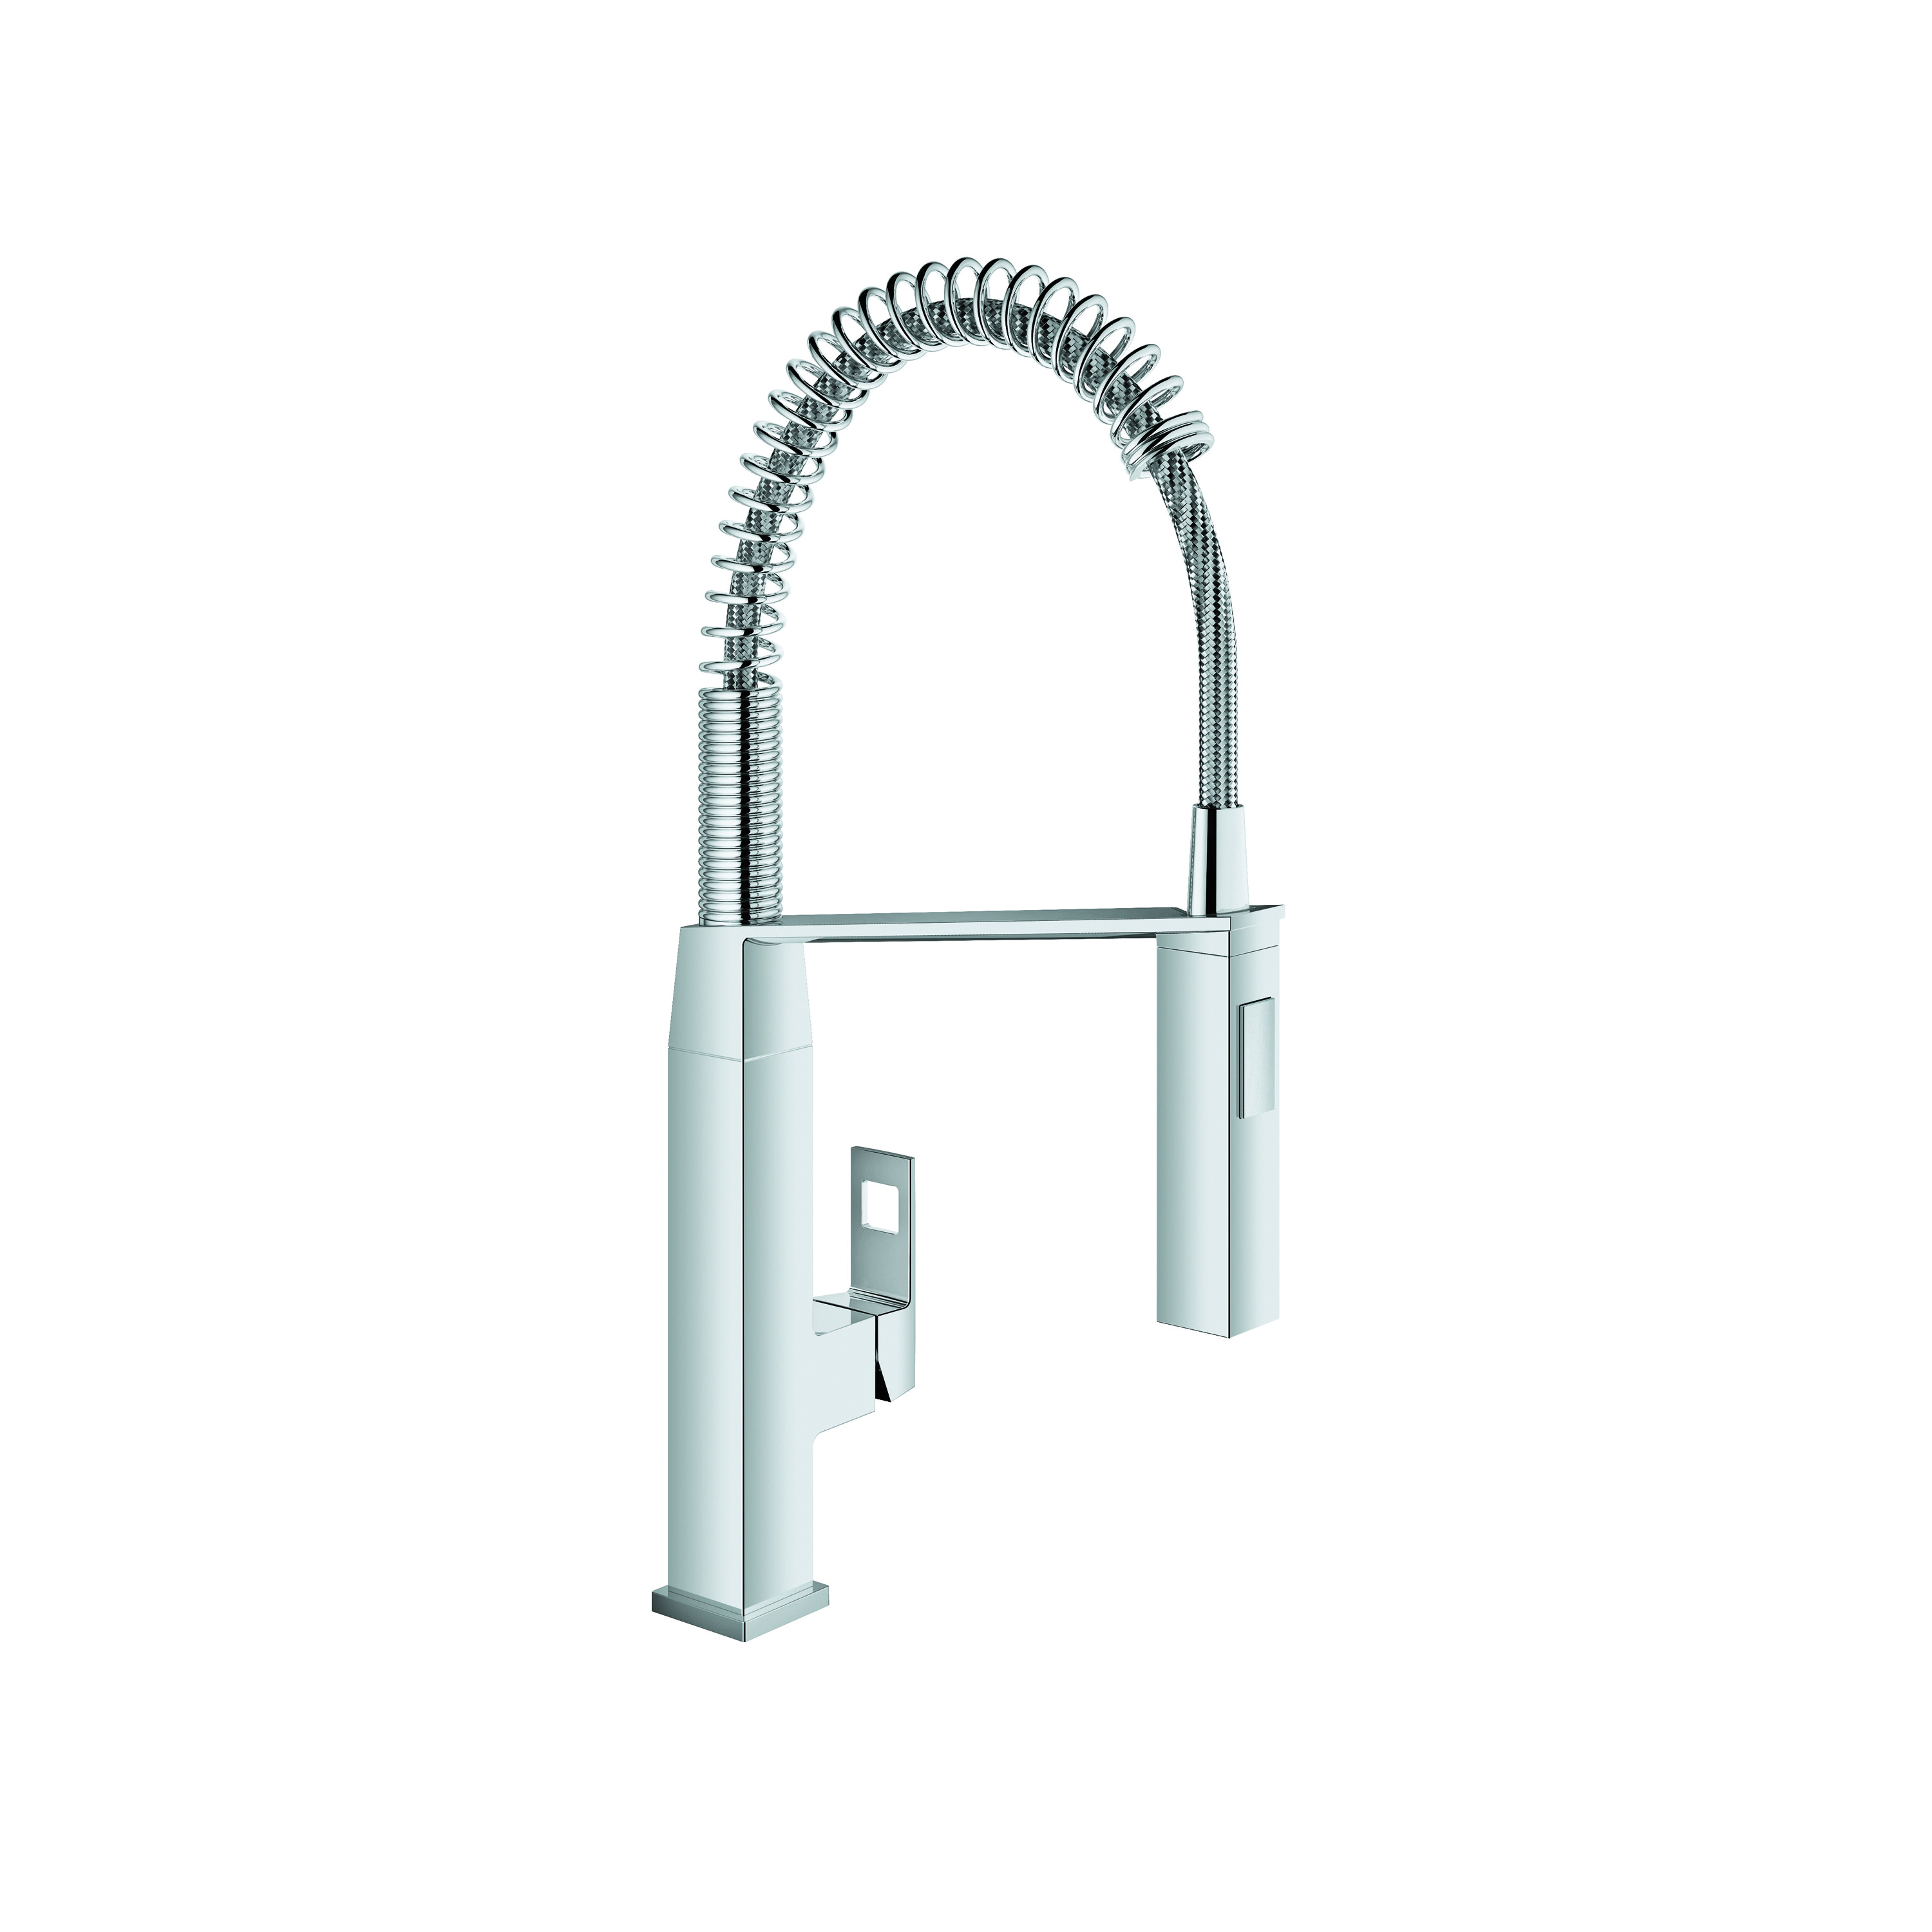 GROHE 31401000 Eurocube® Sink Mixer, 1.75 gpm, 1 Handle, Chrome Plated, Import